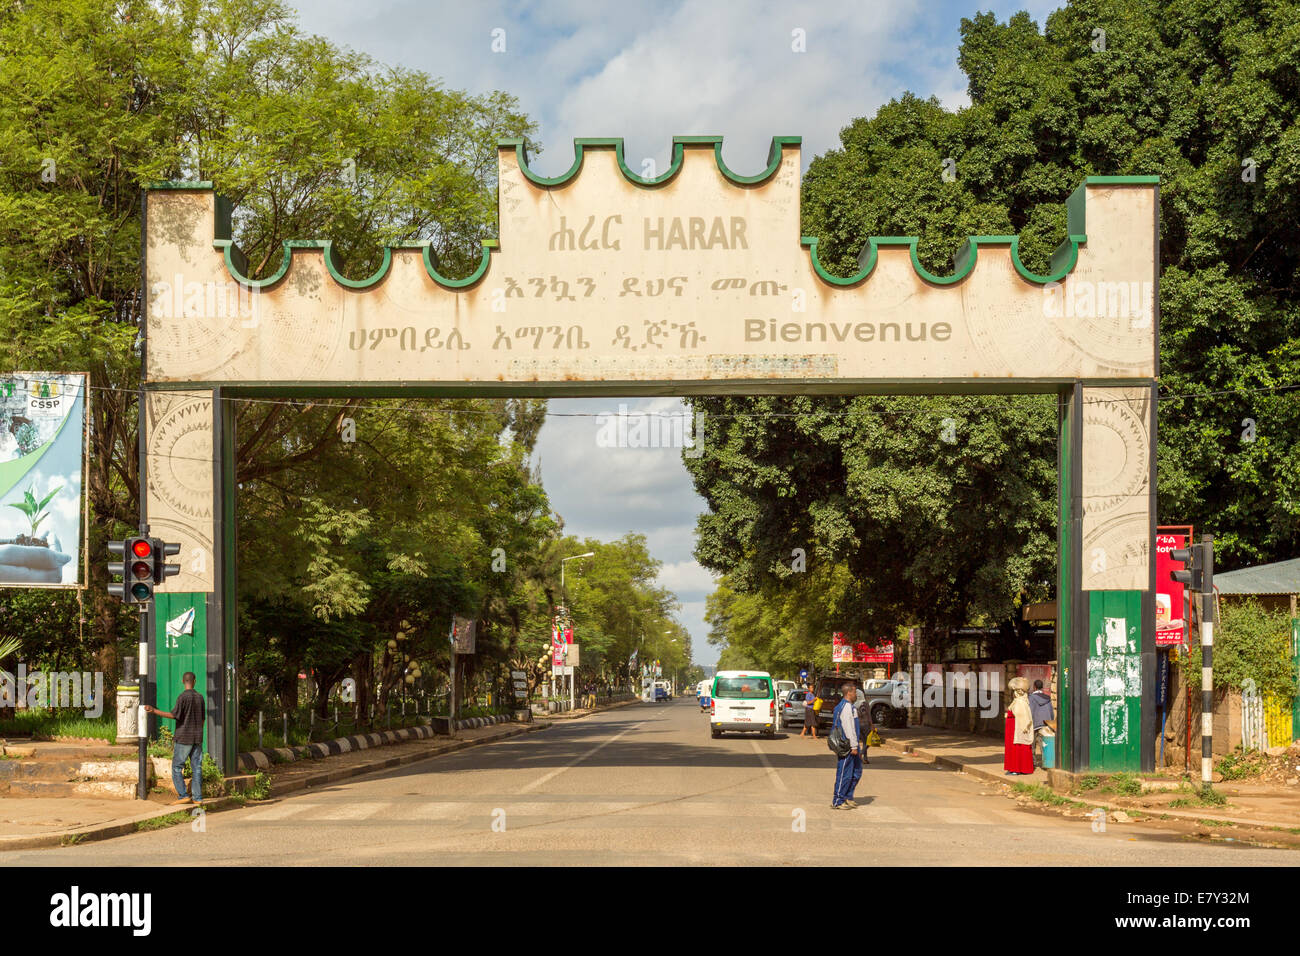 HARAR, ETHIOPIA - JULY 26,2014 - A Gate with a welcoming message is placed at the border of the city of Harar. - Stock Image